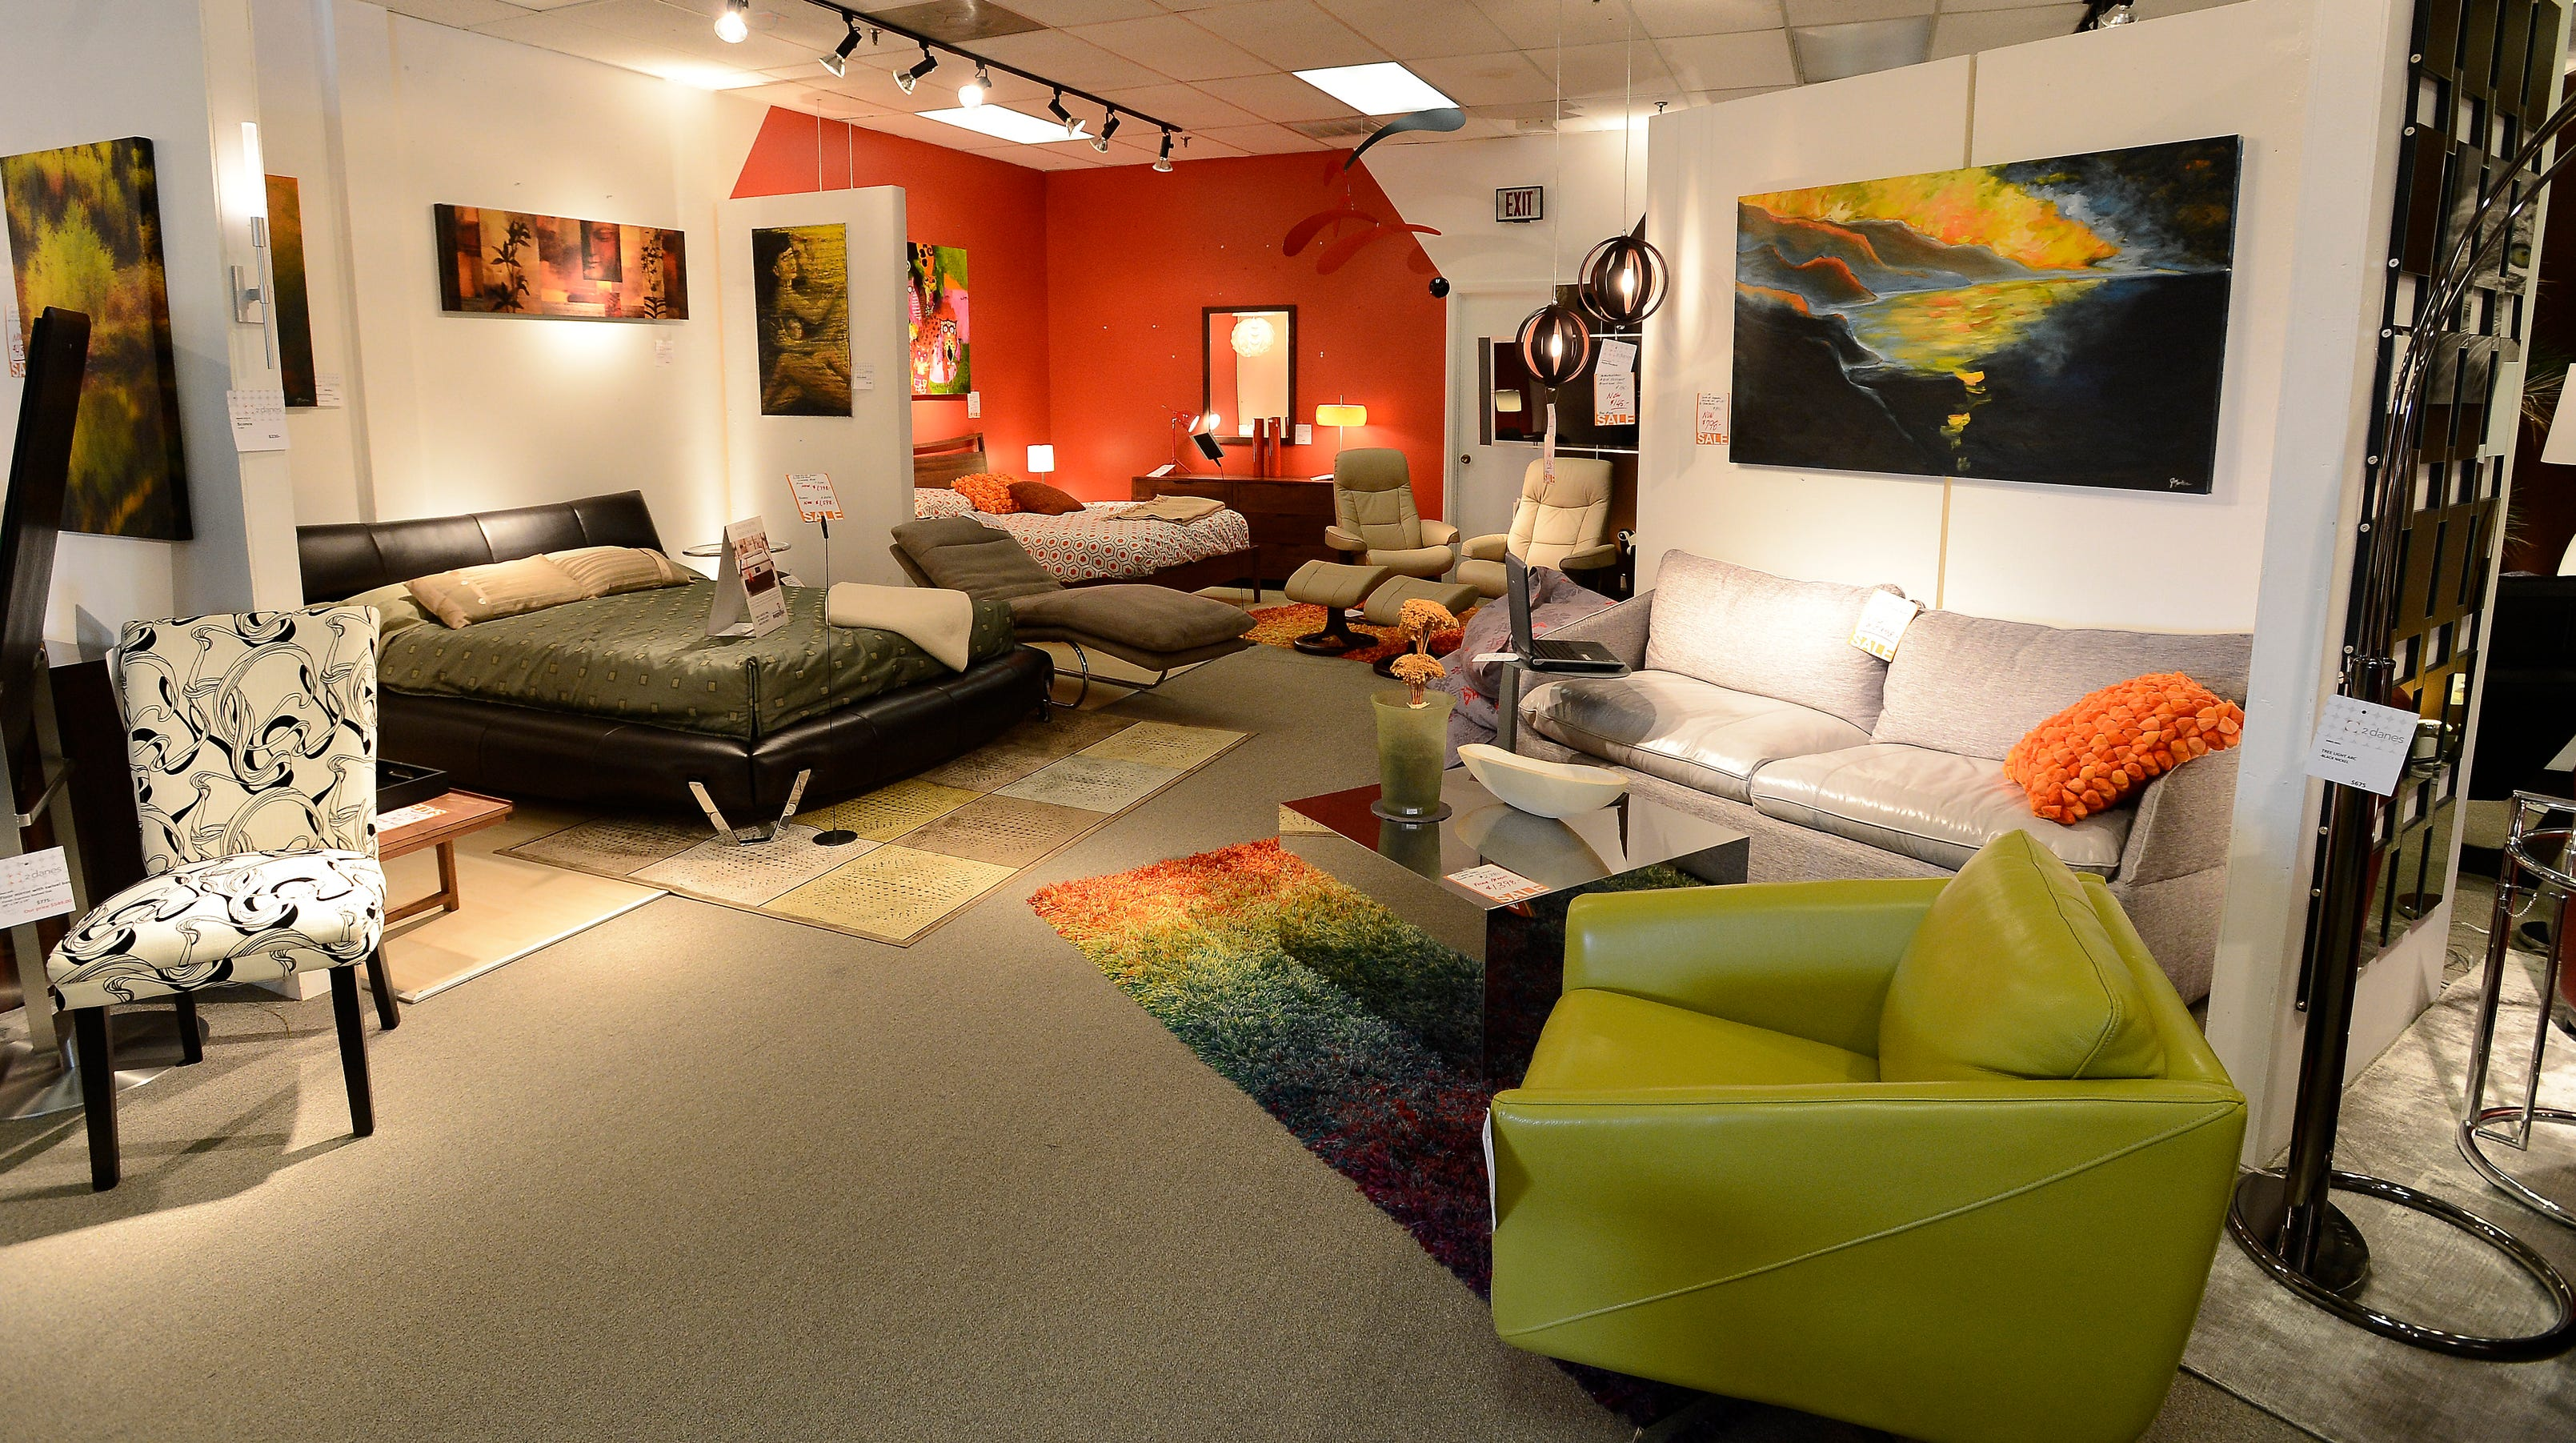 10 fabulous Nashville-area furniture stores to help you redecorate